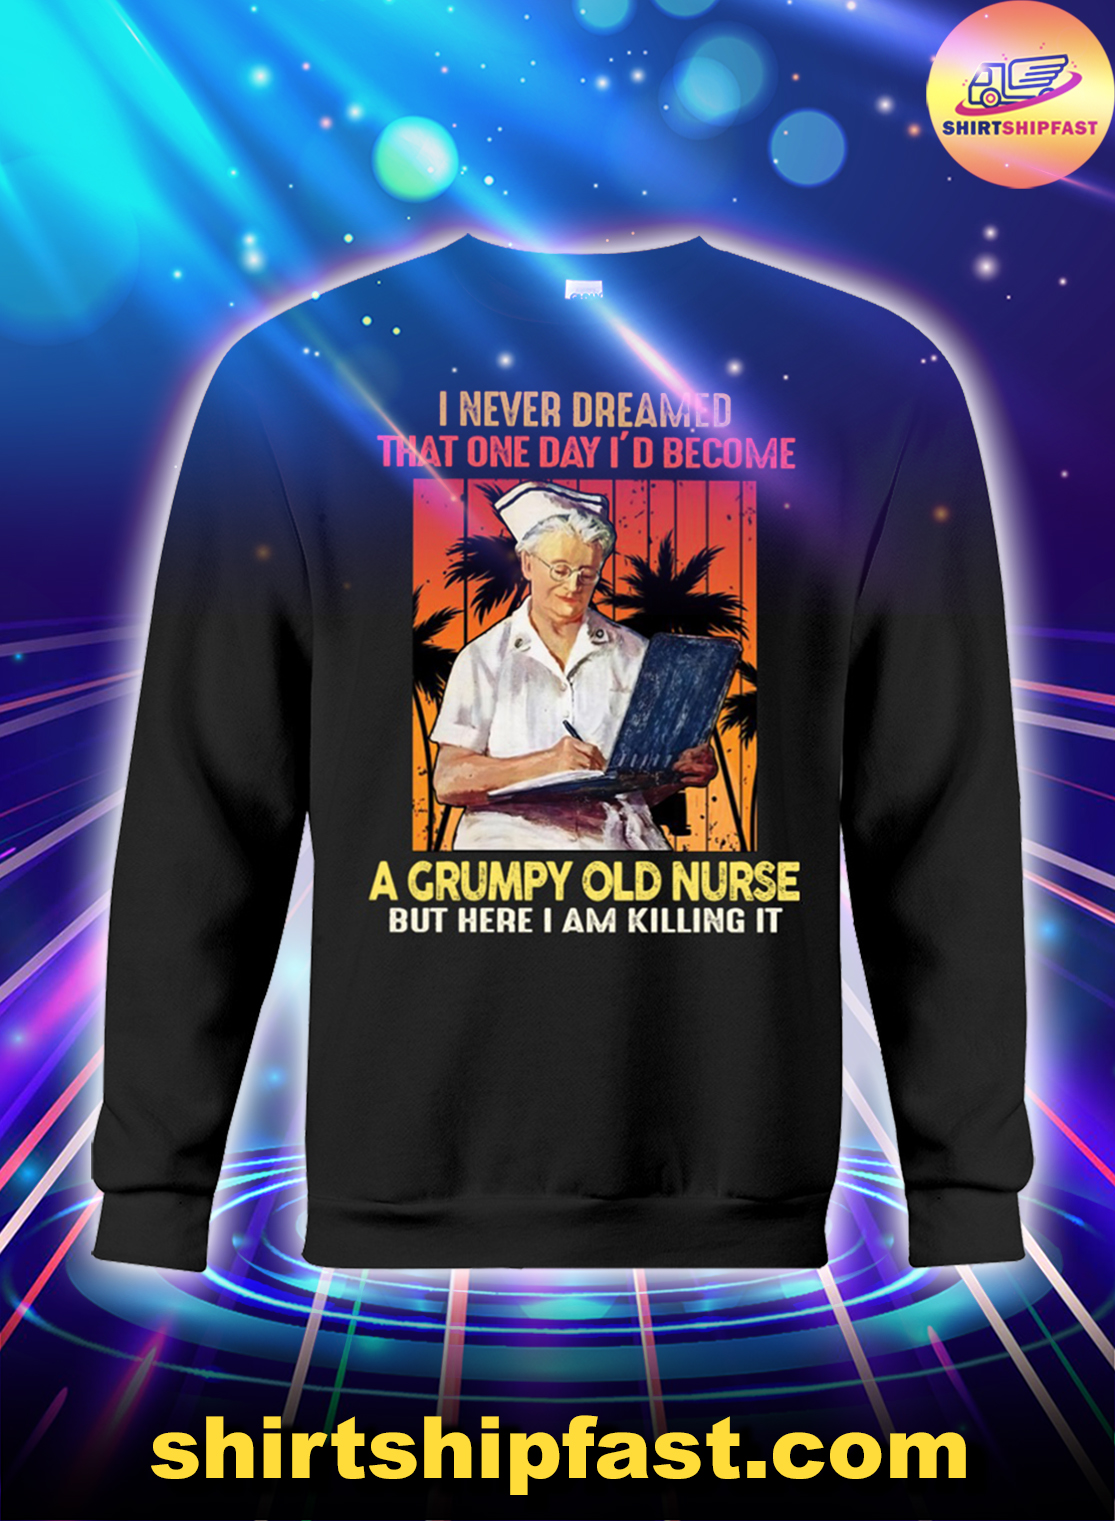 I never dreamed that one day I'd become a grumpy old nurse sweatshirt